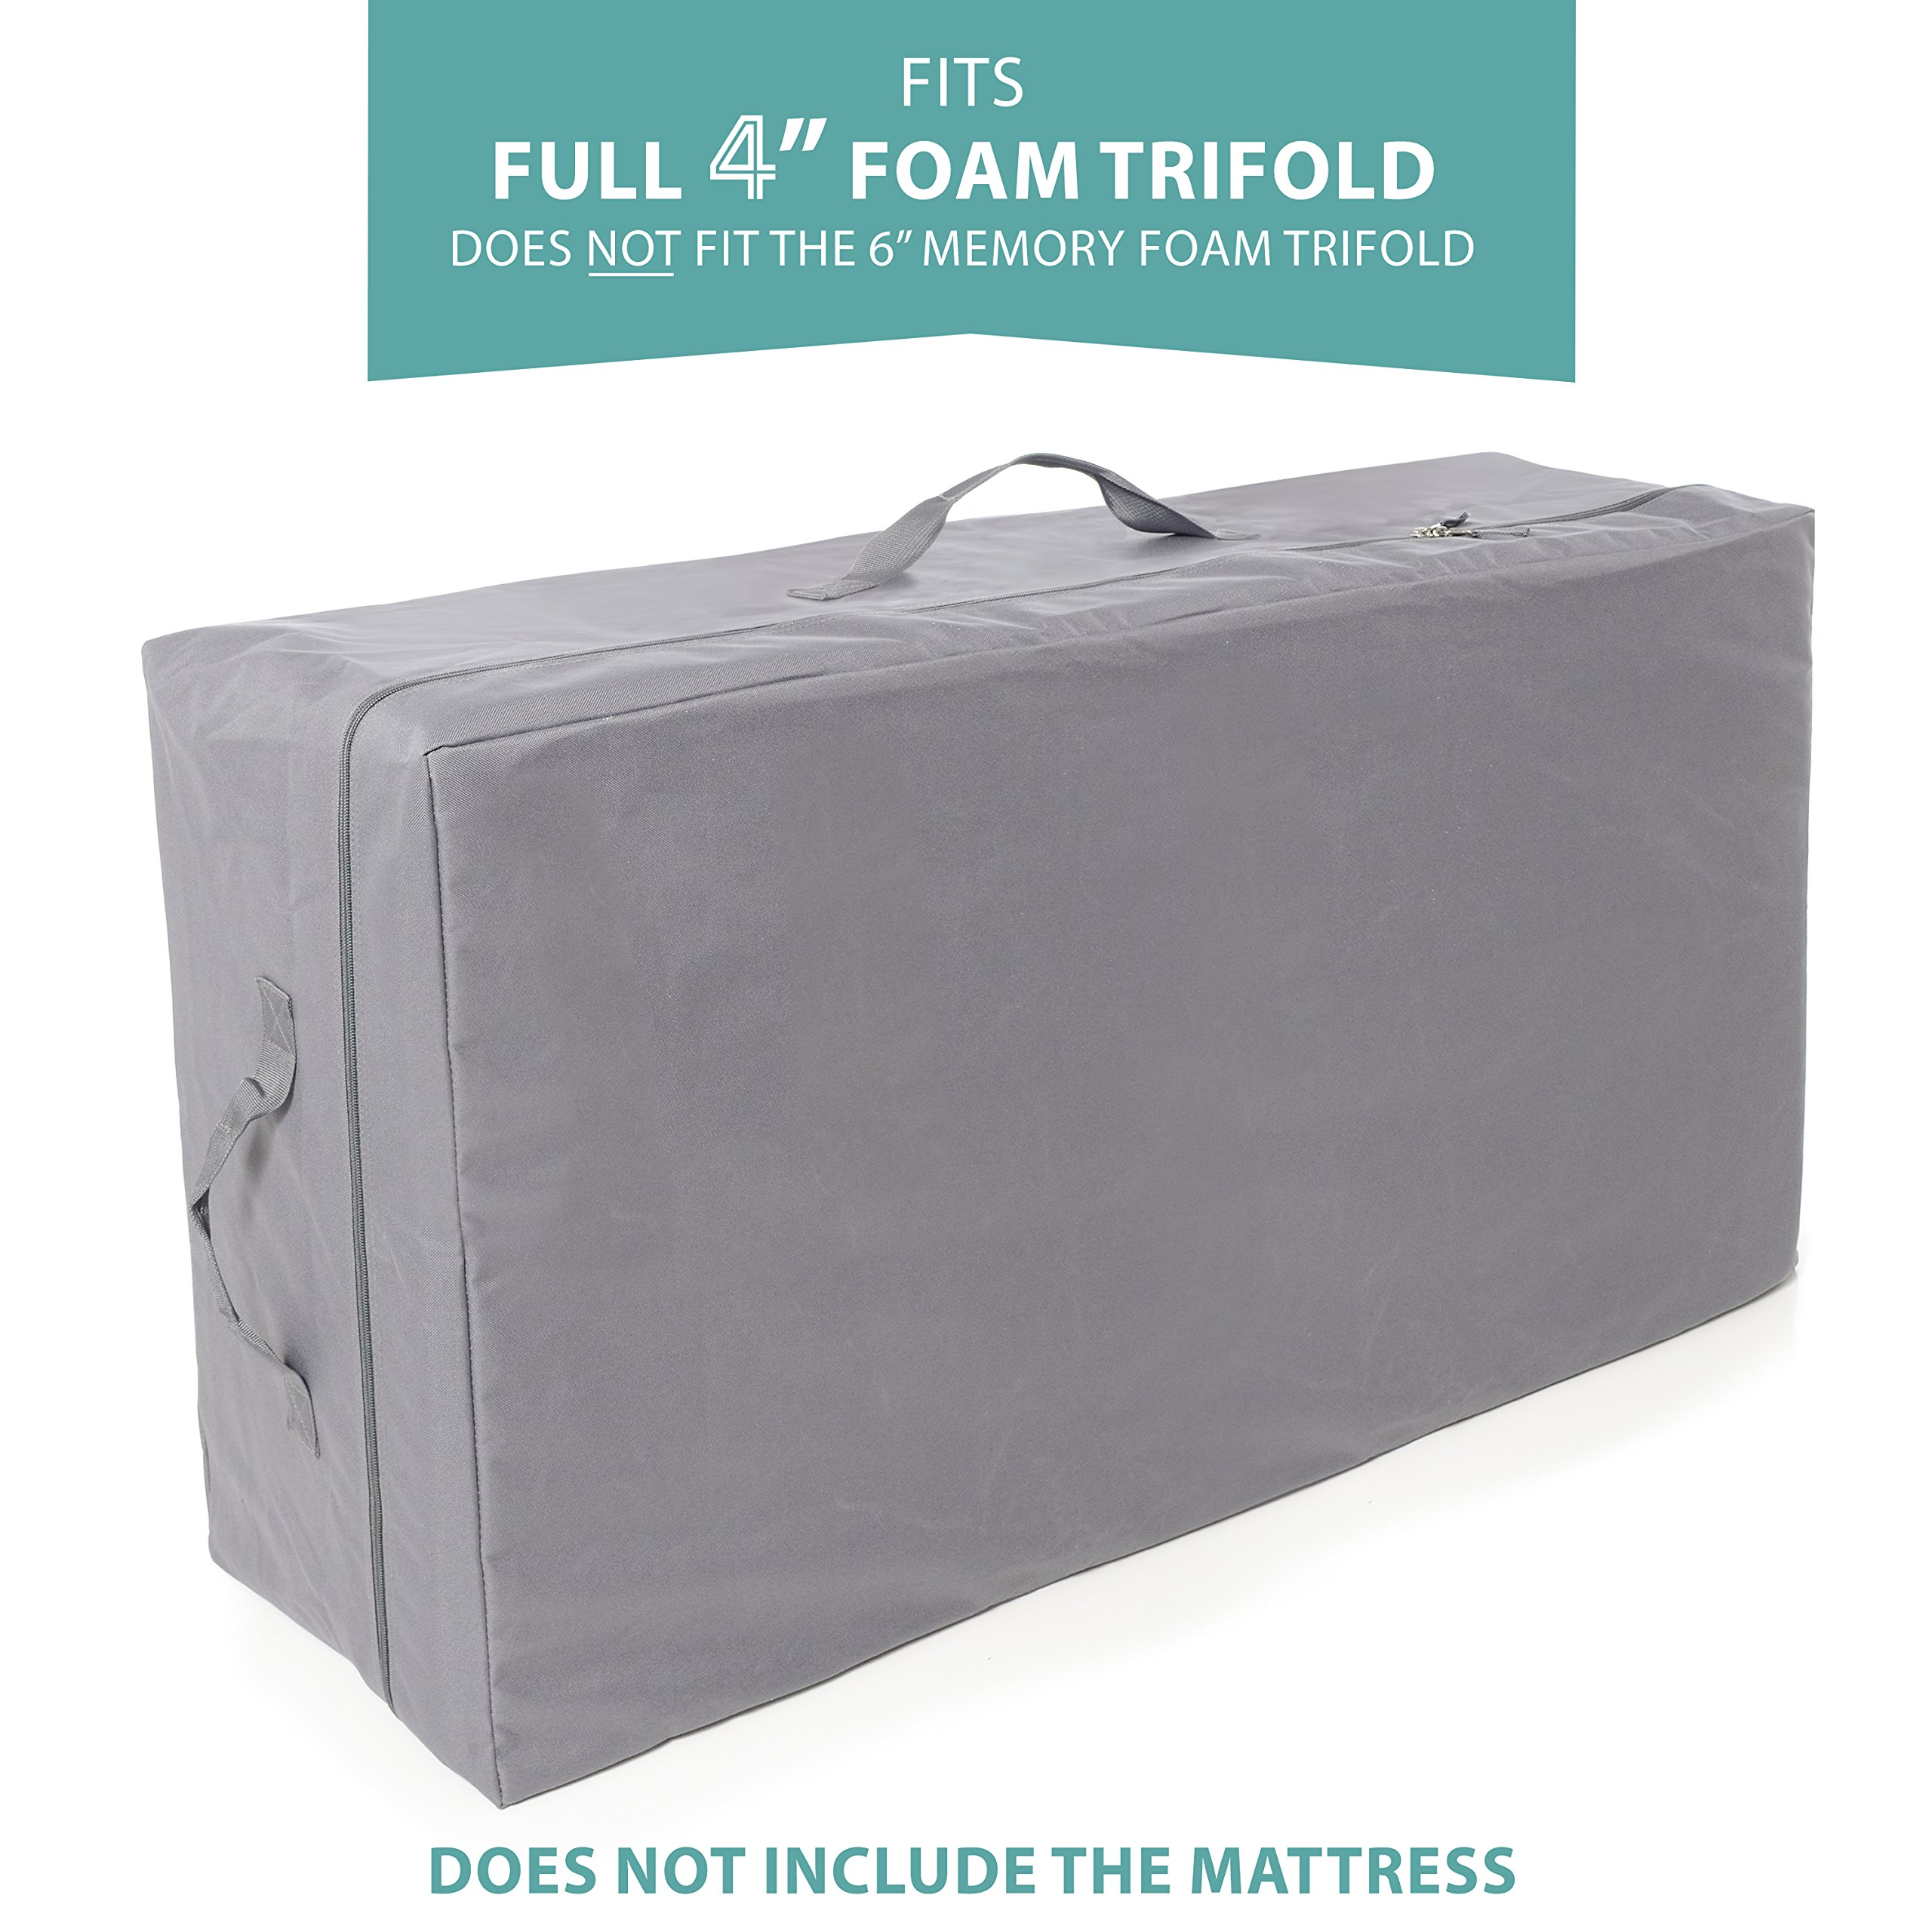 Carry Case for Milliard 4 inch Full Tri-Fold Mattress (Does Not Fit 6 inch) by Milliard